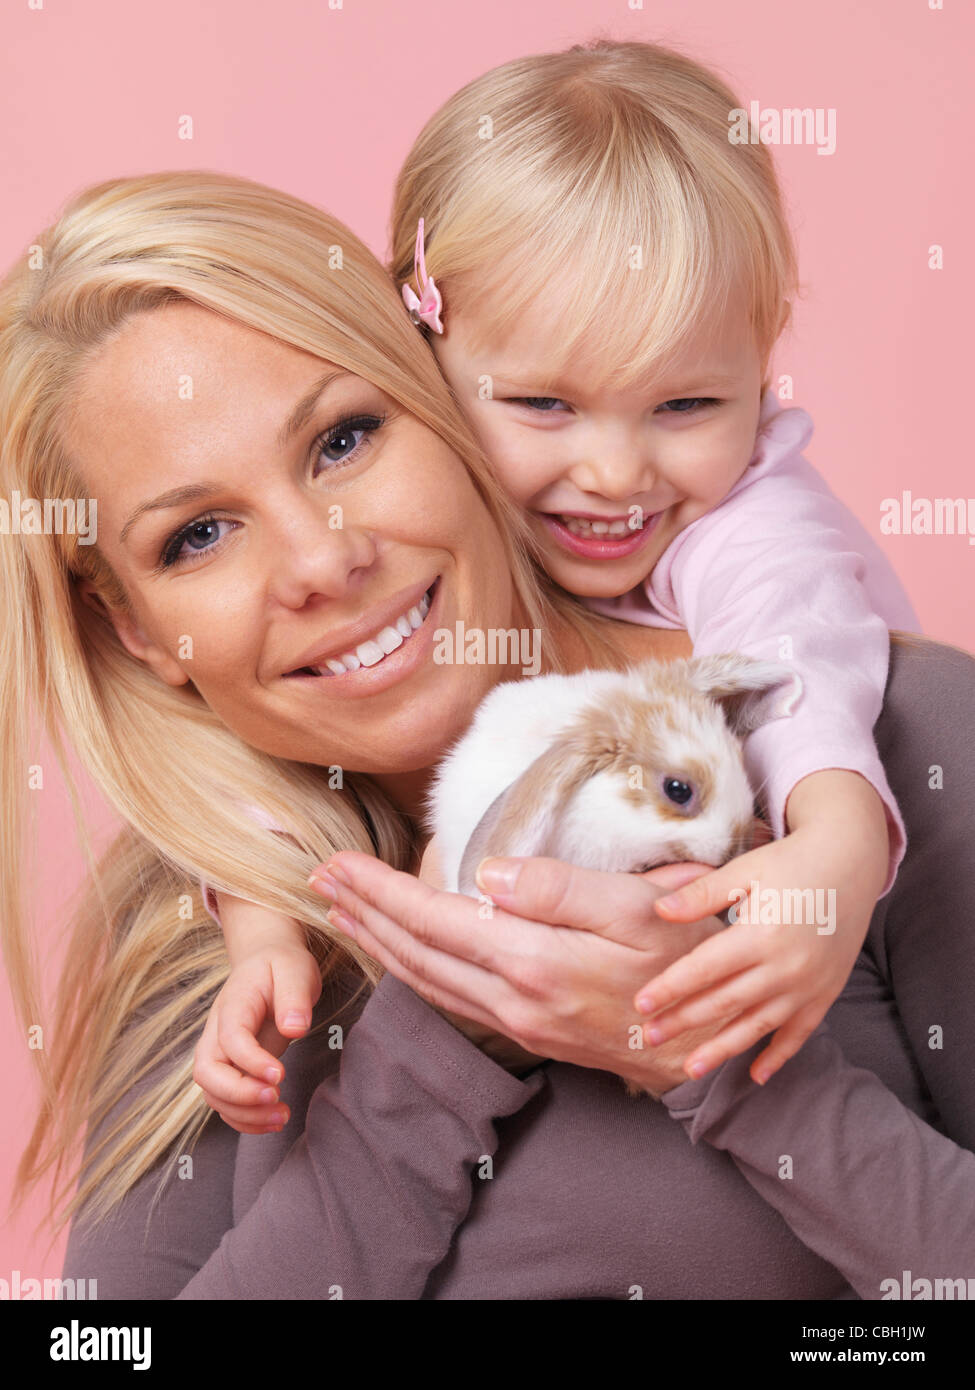 Portrait of a smiling three year old girl with her mother holding a pet rabbit in her hands isolated on pink background - Stock Image